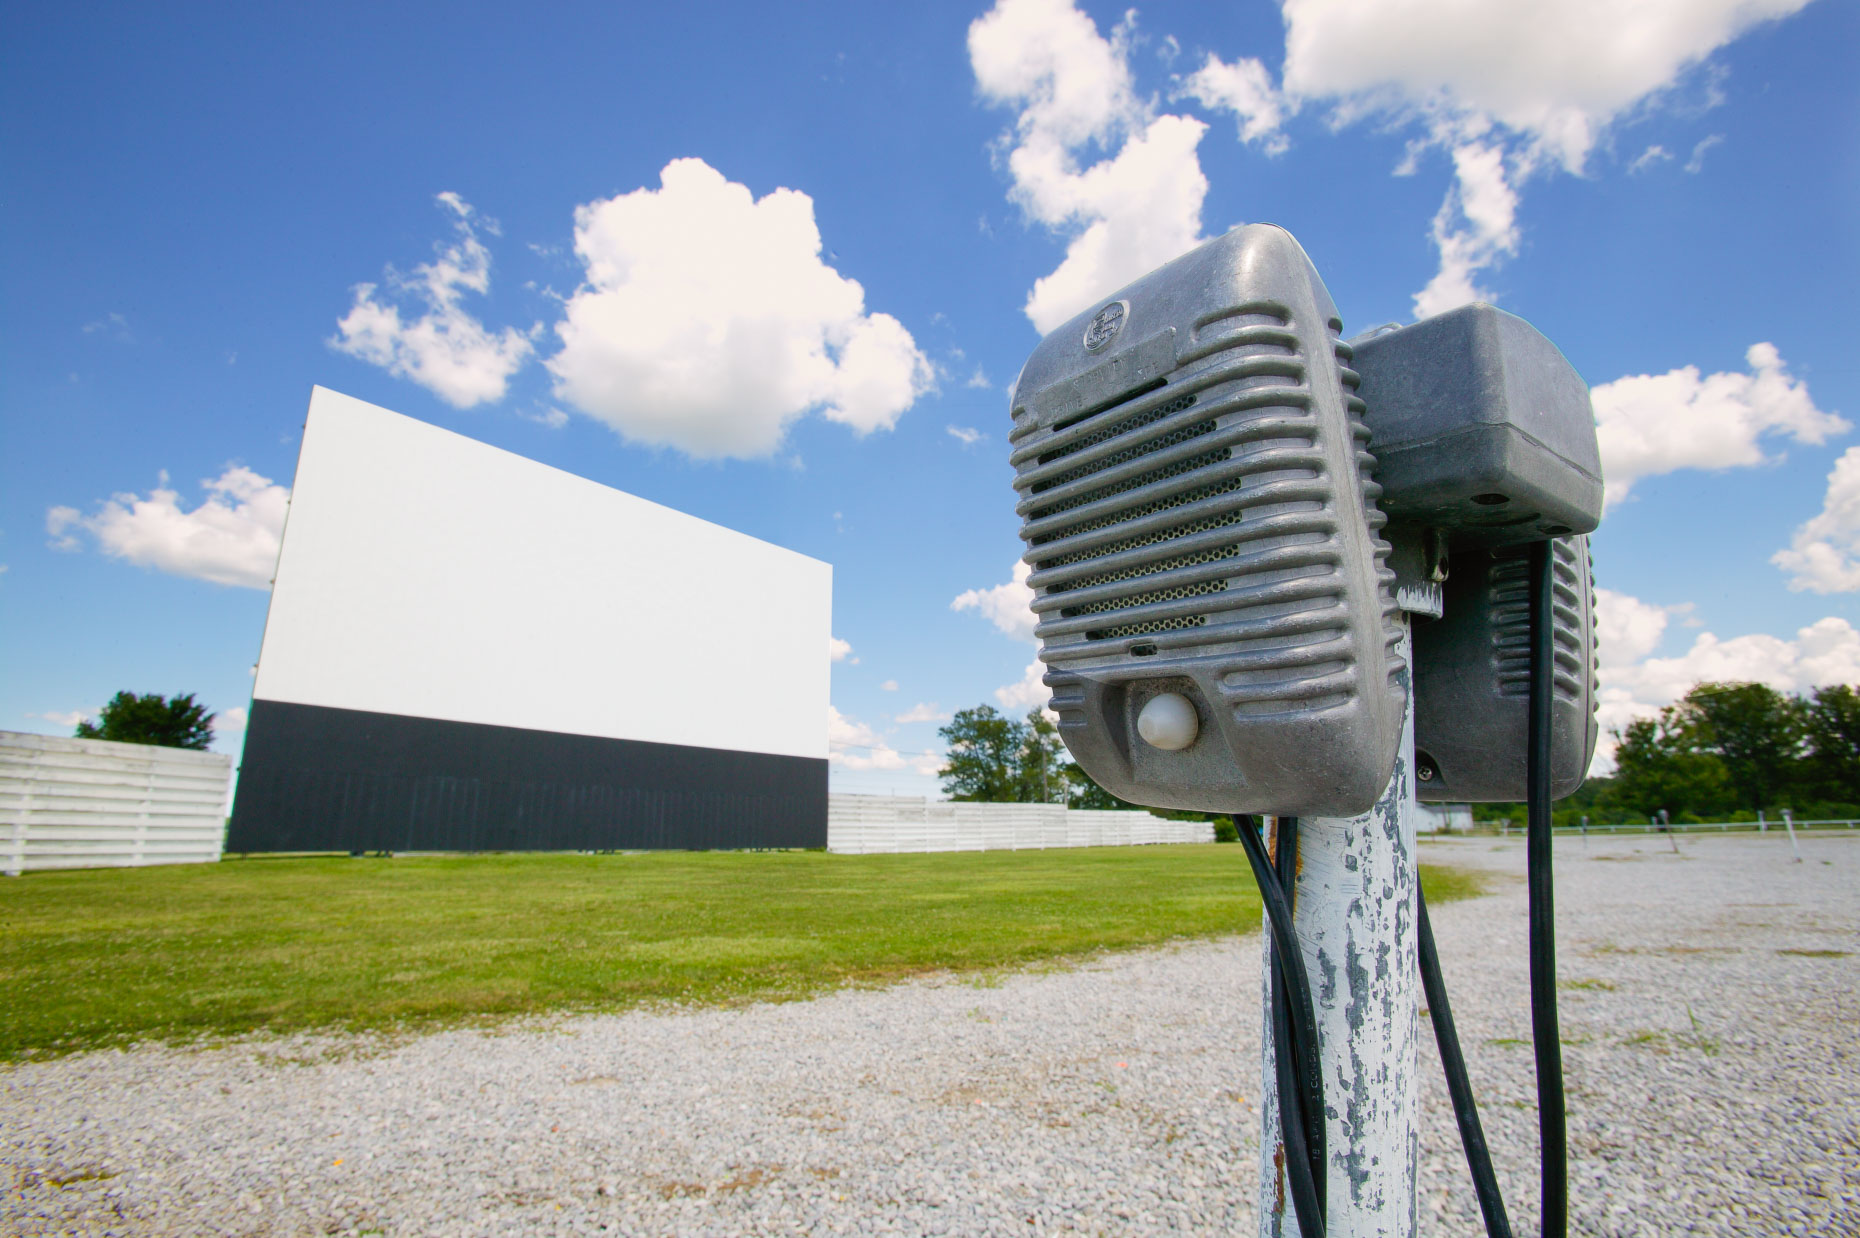 Speakers at drive in movie theater with movie screen in background in Ohio by David Zaitz